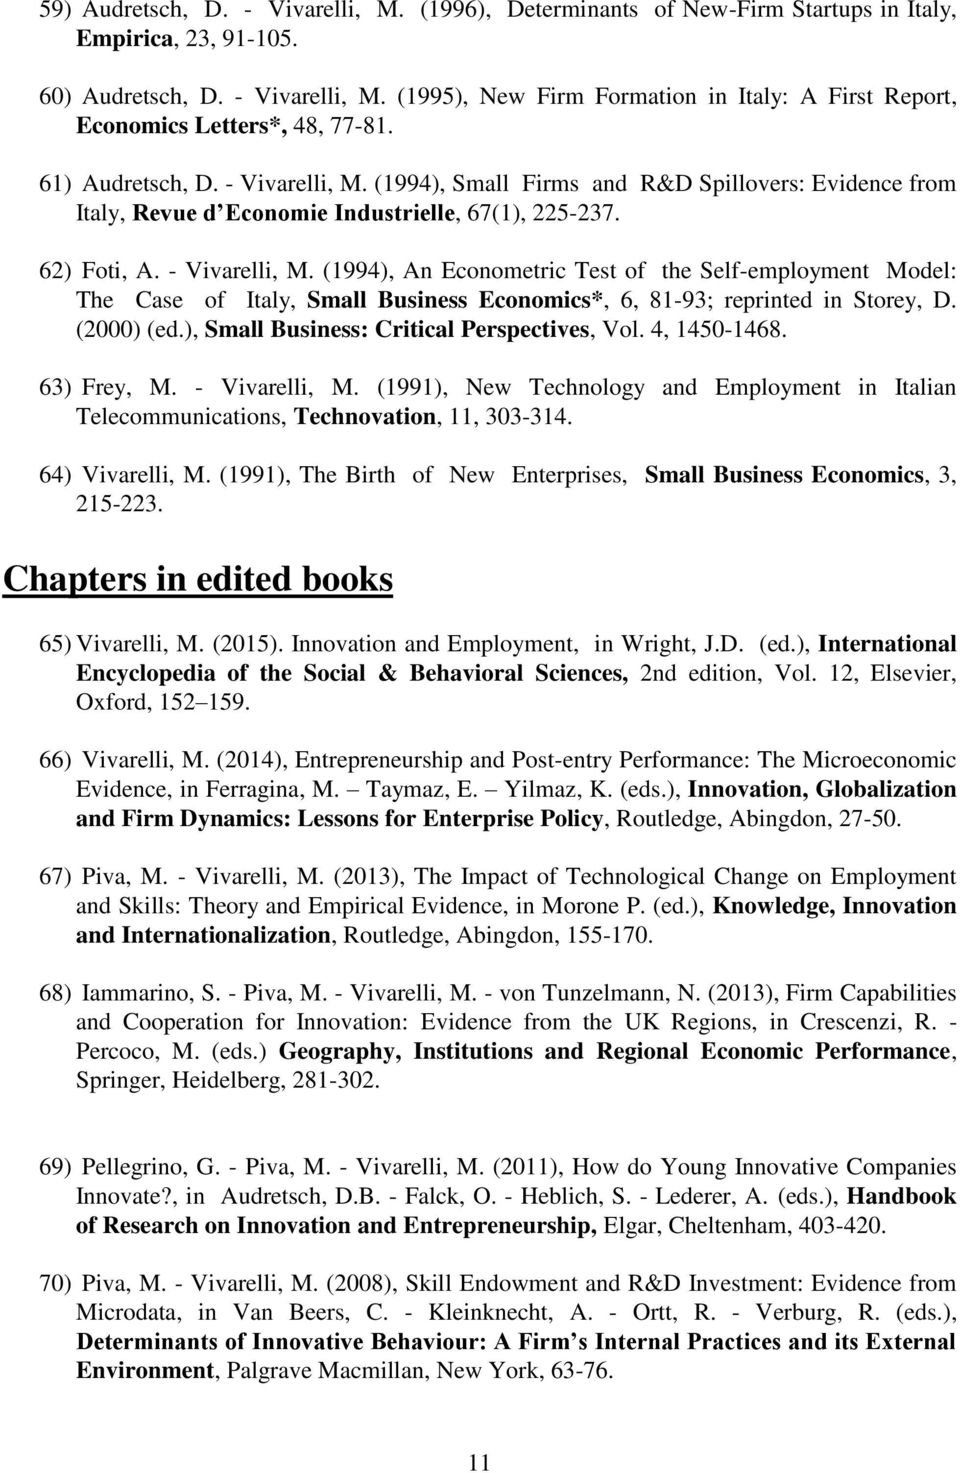 (2000) (ed.), Small Business: Critical Perspectives, Vol. 4, 1450-1468. 63) Frey, M. - Vivarelli, M. (1991), New Technology and Employment in Italian Telecommunications, Technovation, 11, 303-314.